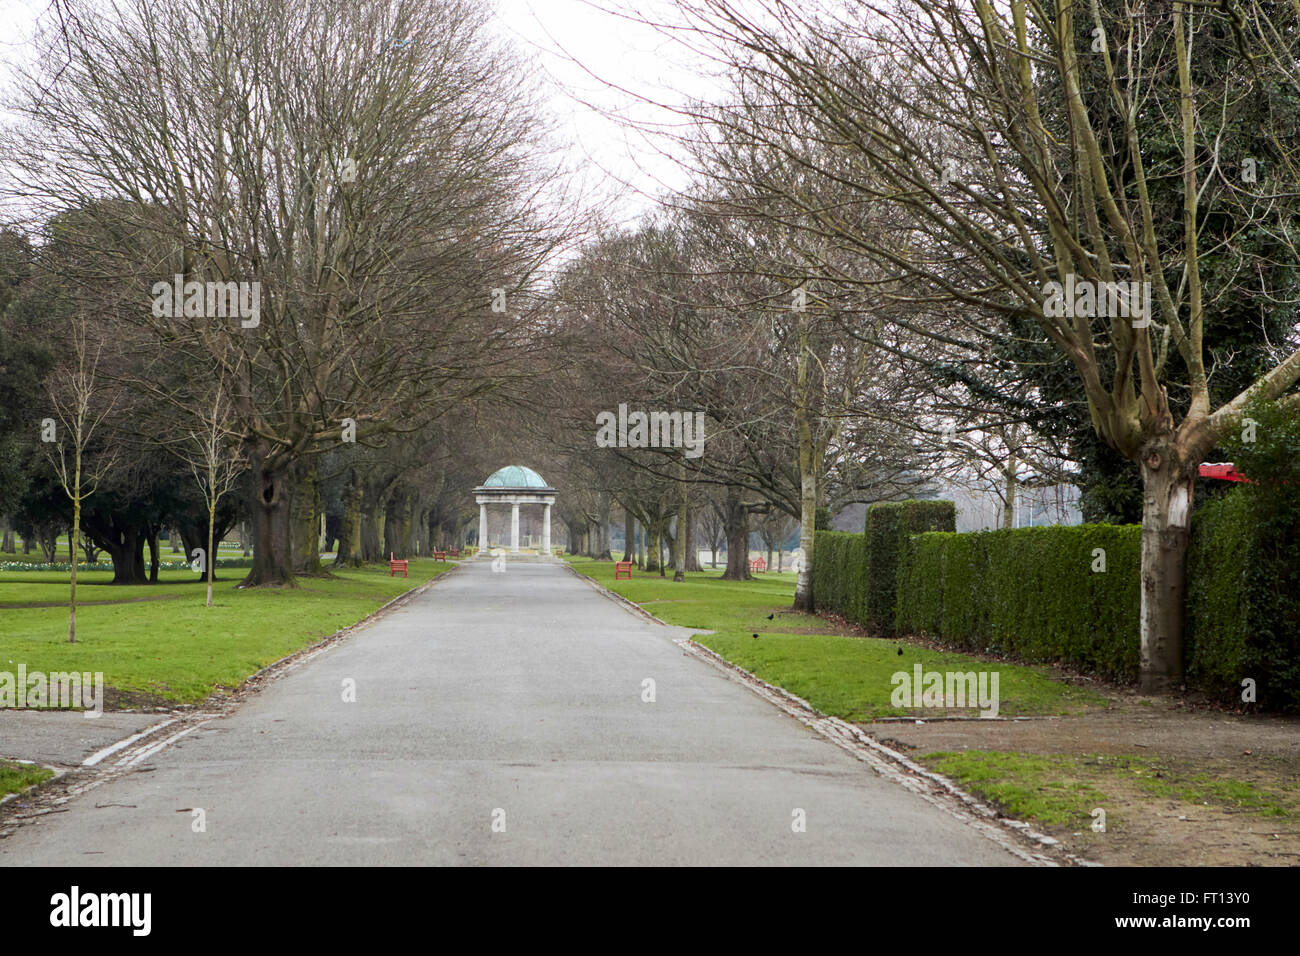 entrance to the irish national war memorial gardens dublin Ireland - Stock Image